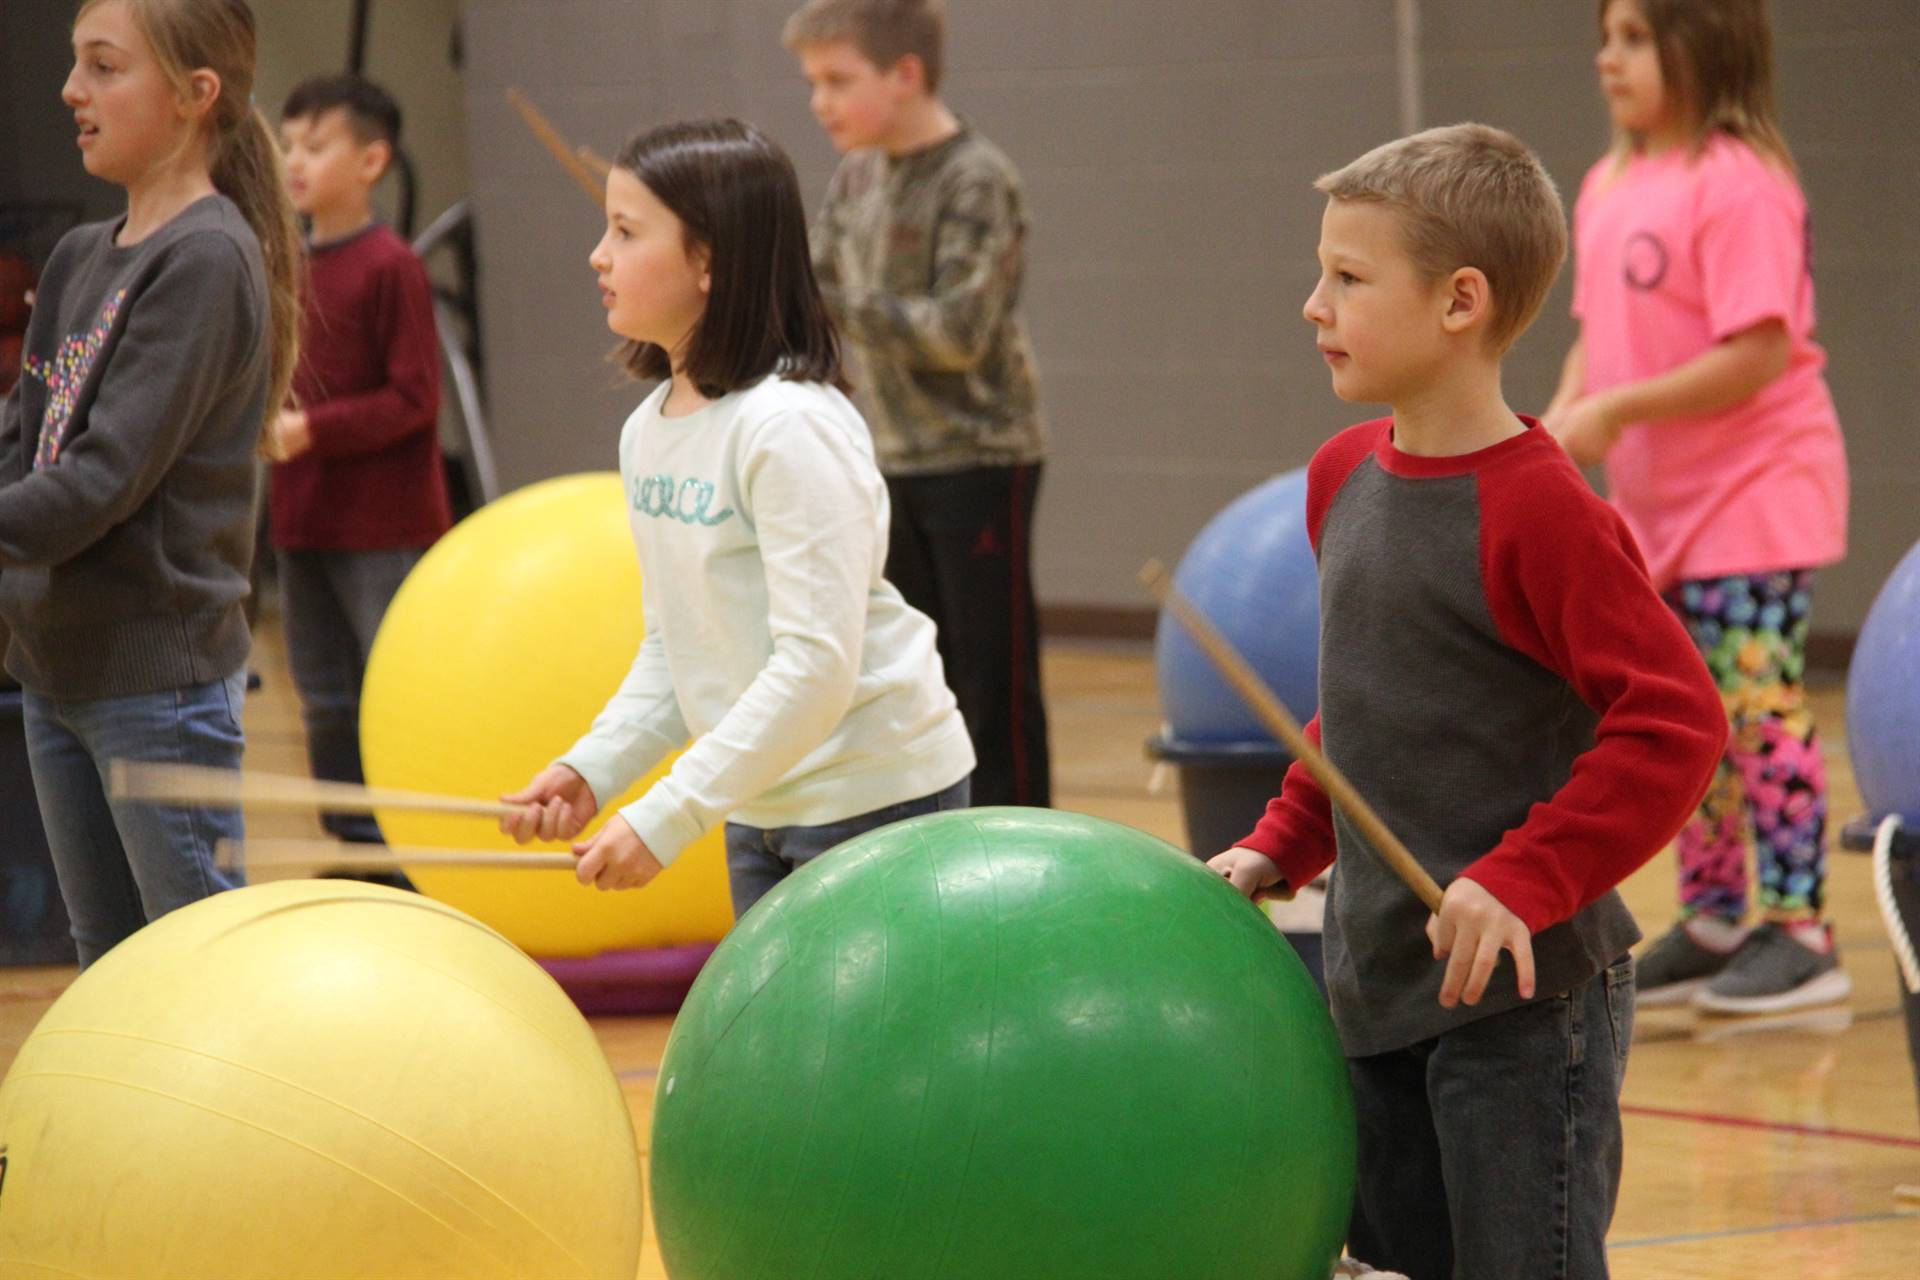 medium shot of students hitting drum sticks on large exercise balls